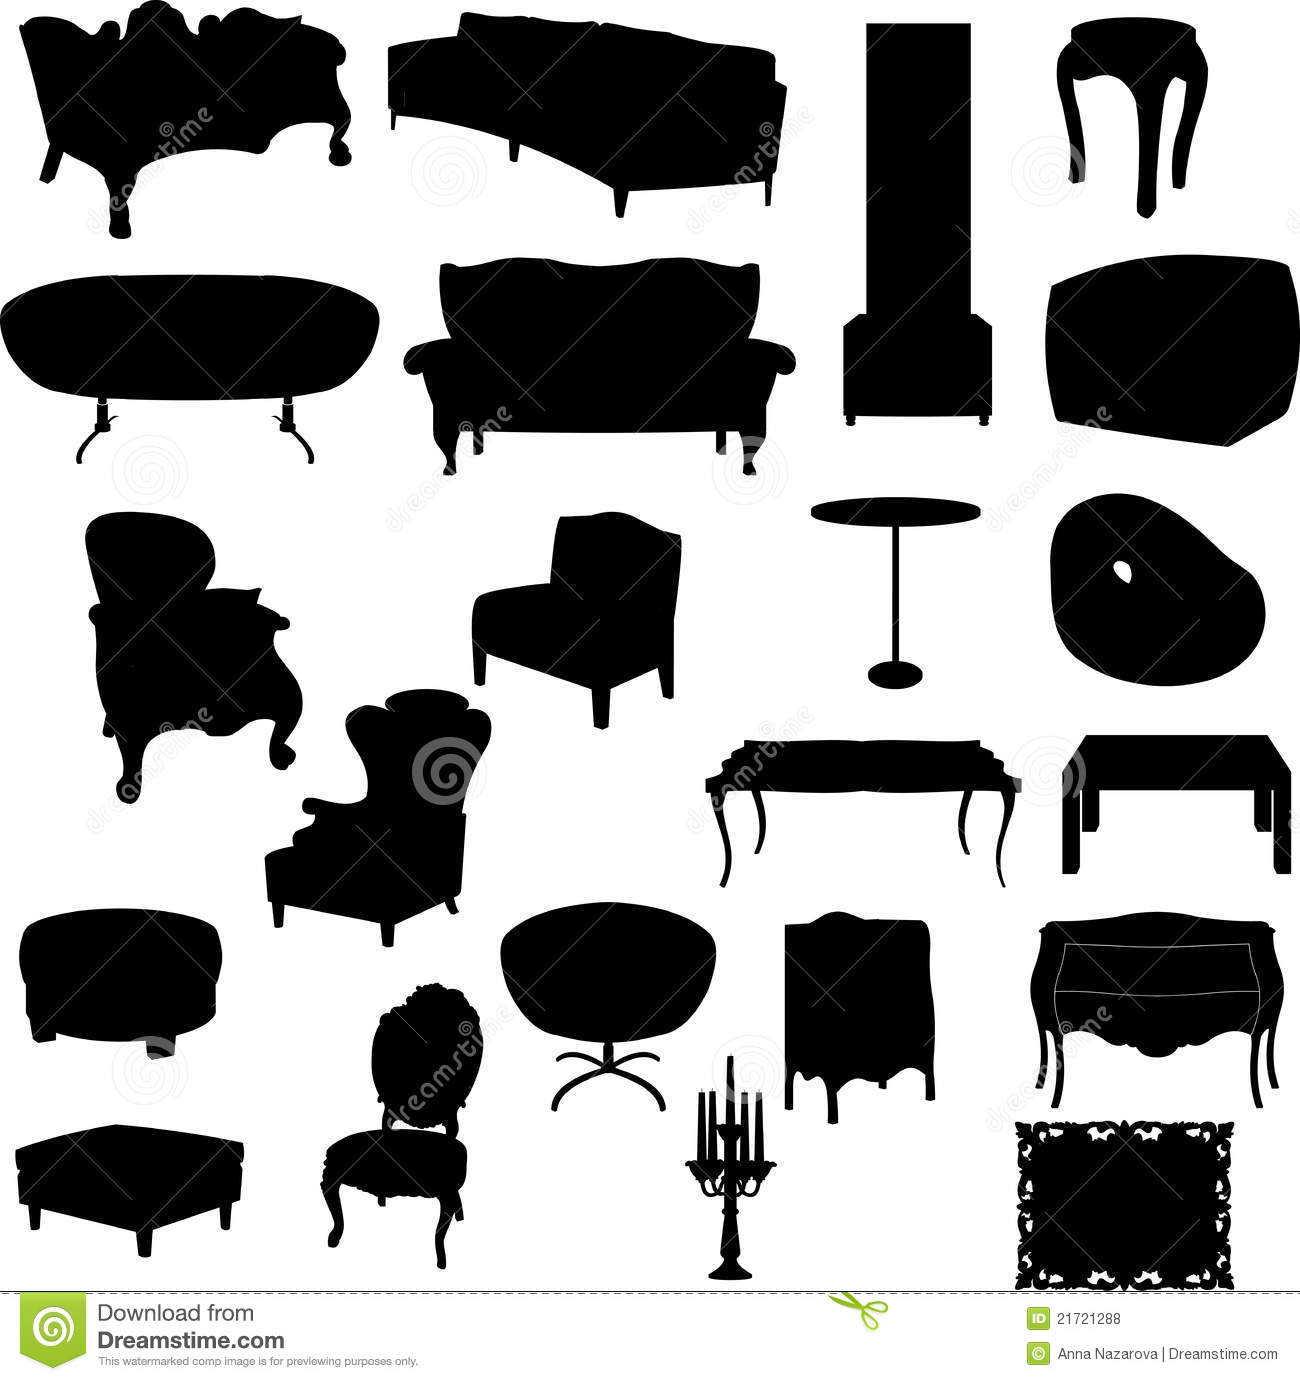 Antique chair silhouette - Furniture Silhouettes Royalty Free Stock Photos